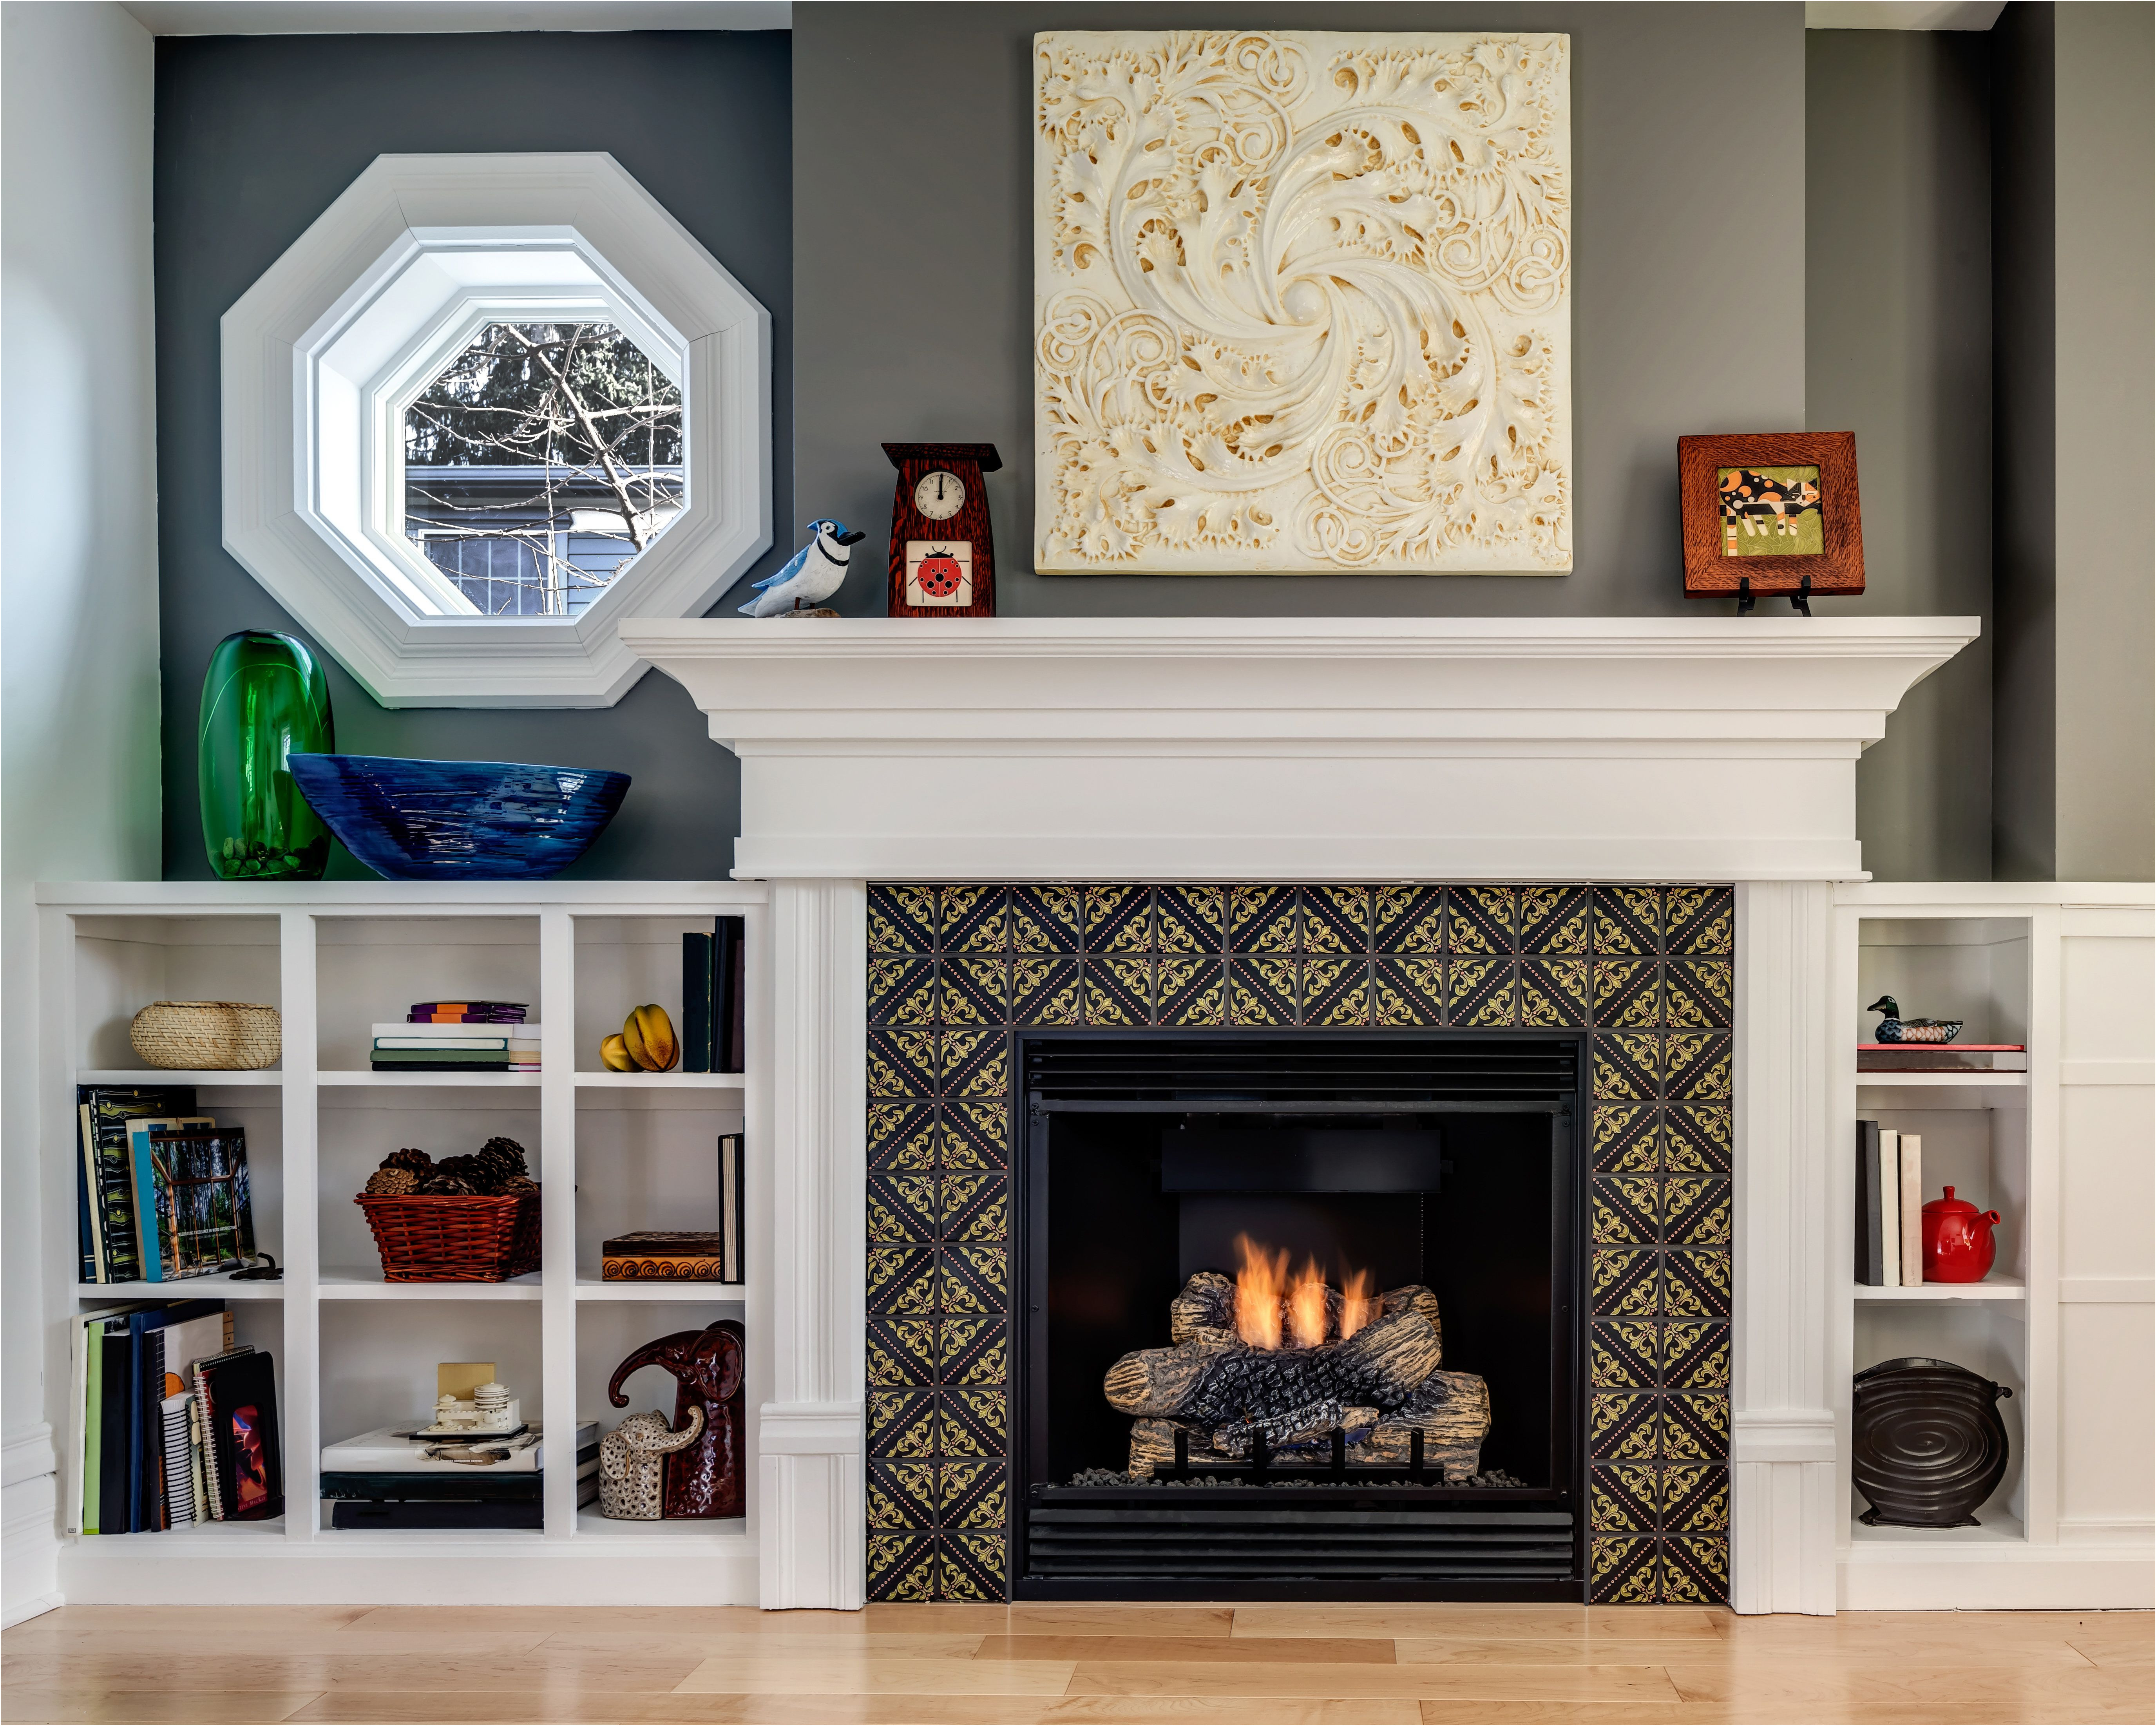 Tile Fireplace Designs Photos Inspirational This Small but Stylish Fireplace Features Our Lisbon Tile